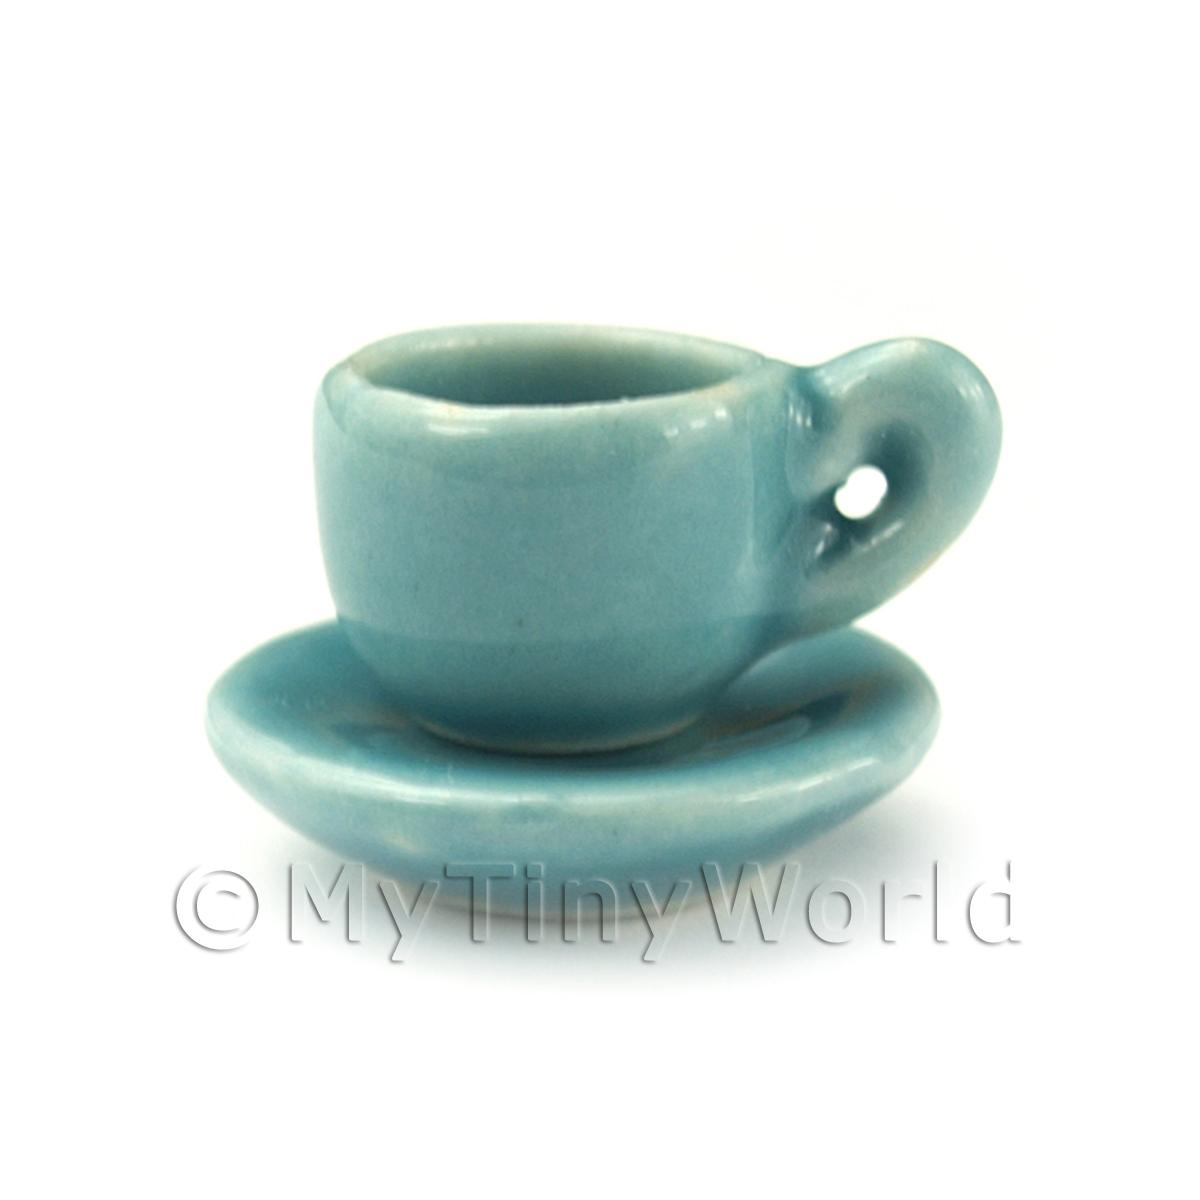 Dolls House Aquamarine Ceramic Tea Cup and Saucer